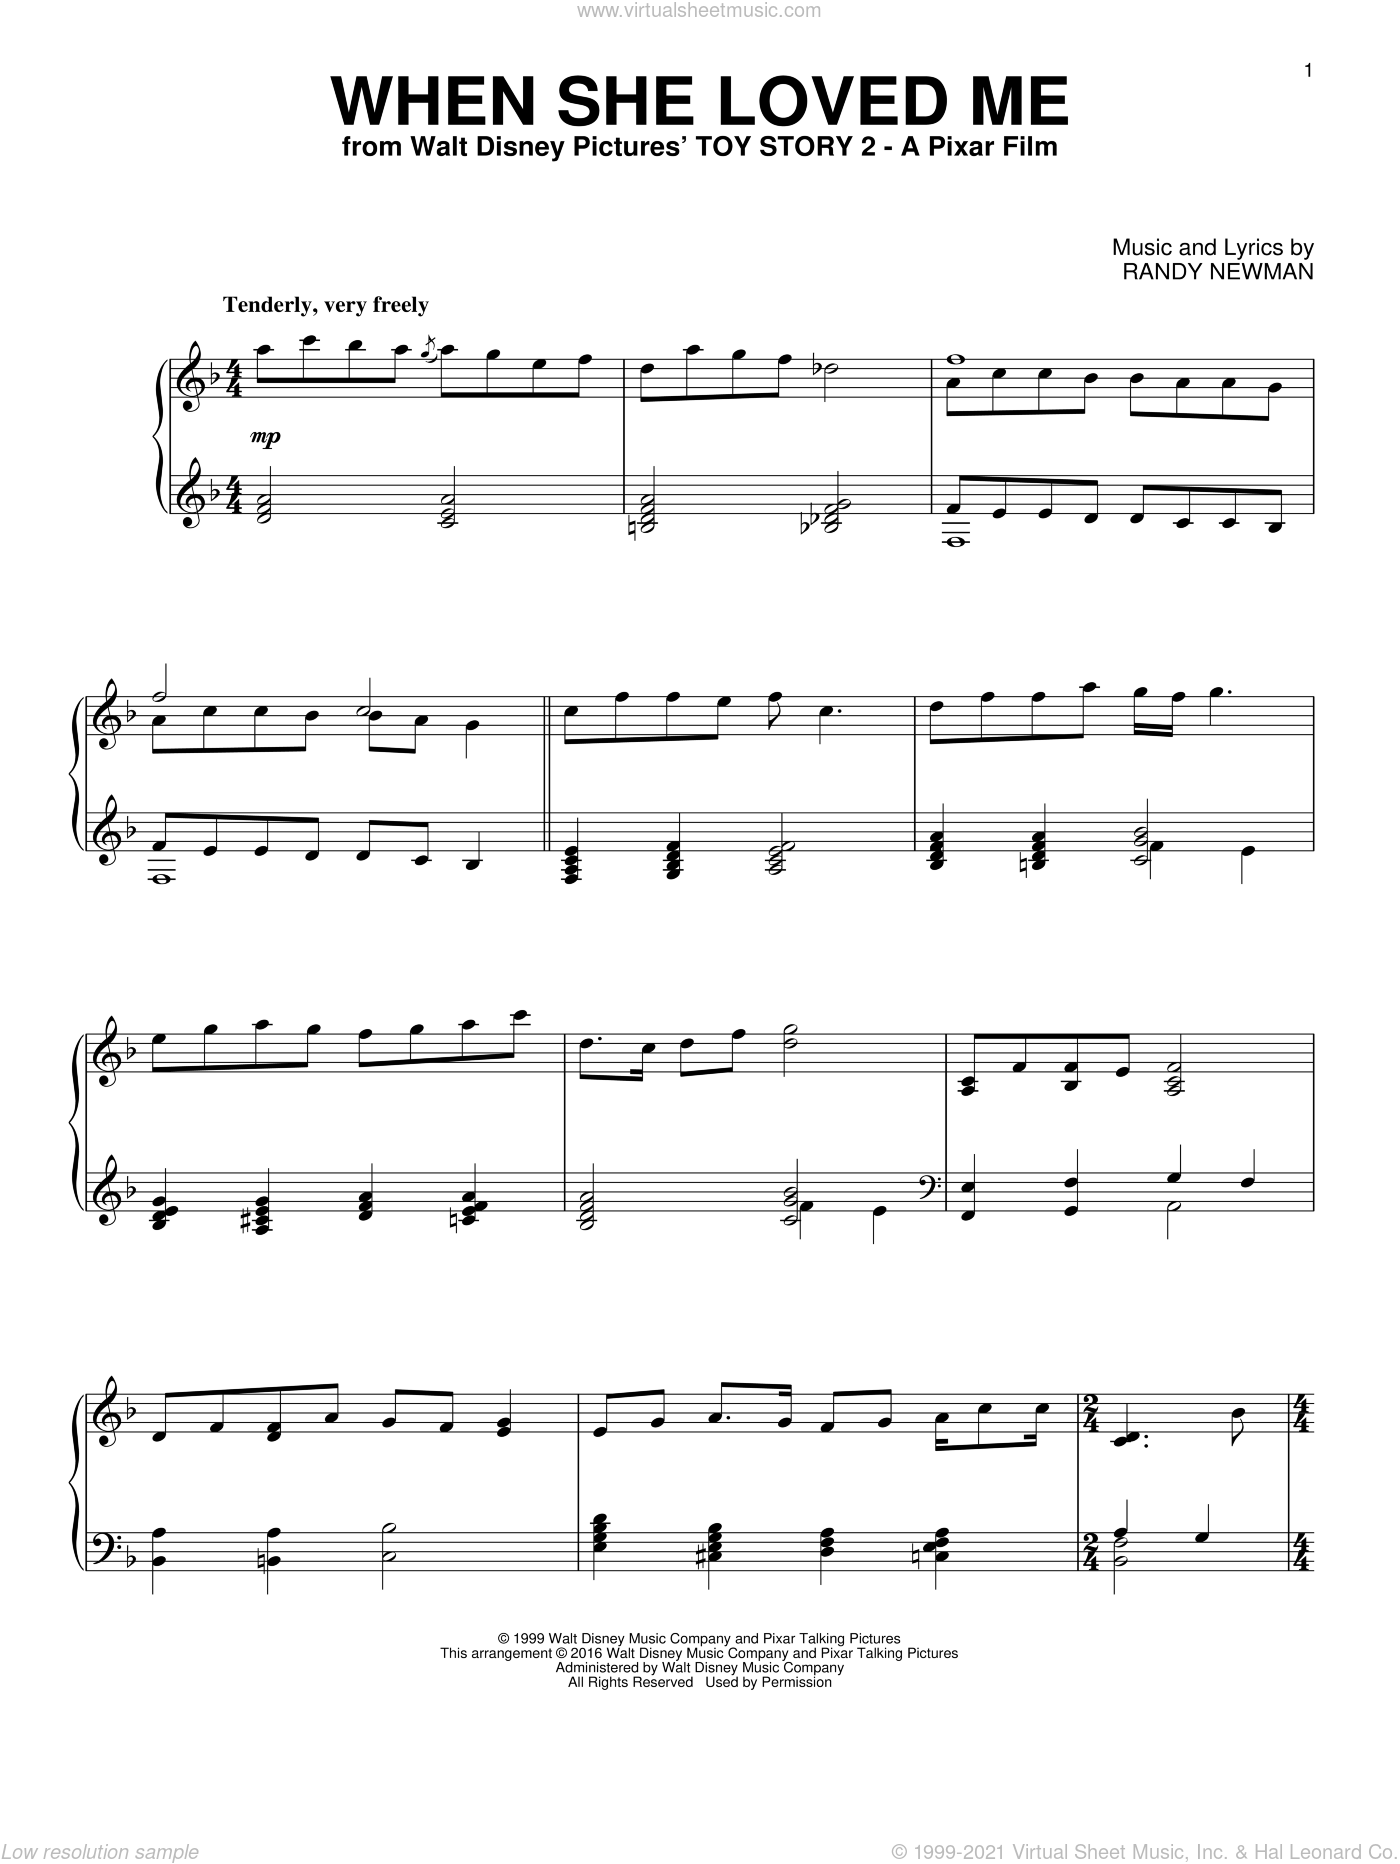 When She Loved Me [Jazz version] (from Toy Story 2) sheet music for piano solo by Sarah McLachlan and Randy Newman, intermediate skill level